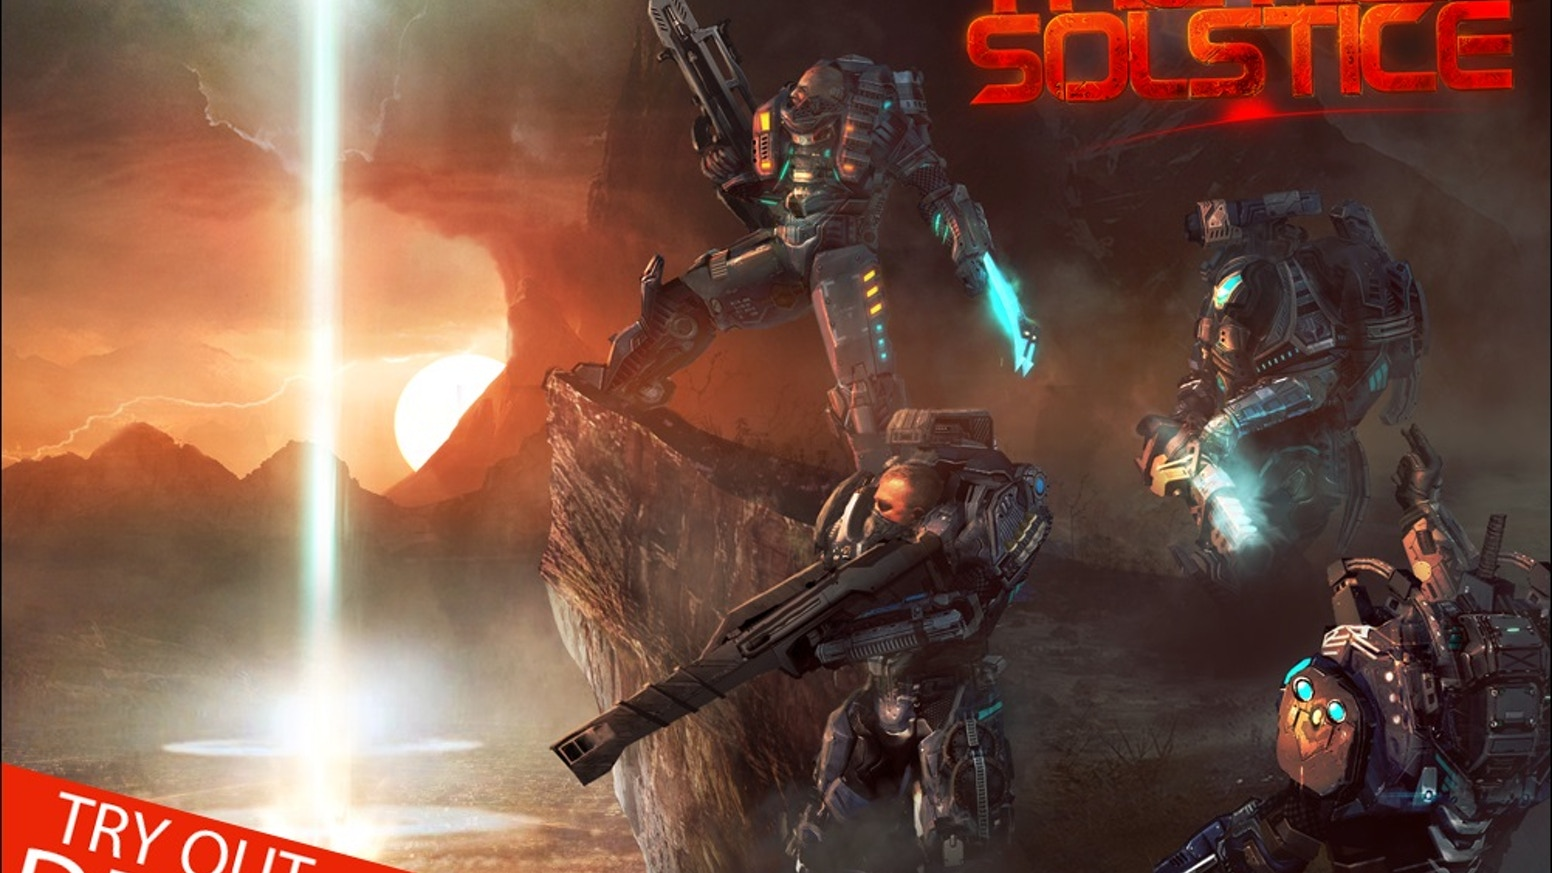 Squad based coop SF strategy/RPG and epic single player campaign, set on Mars colony during the huge storm